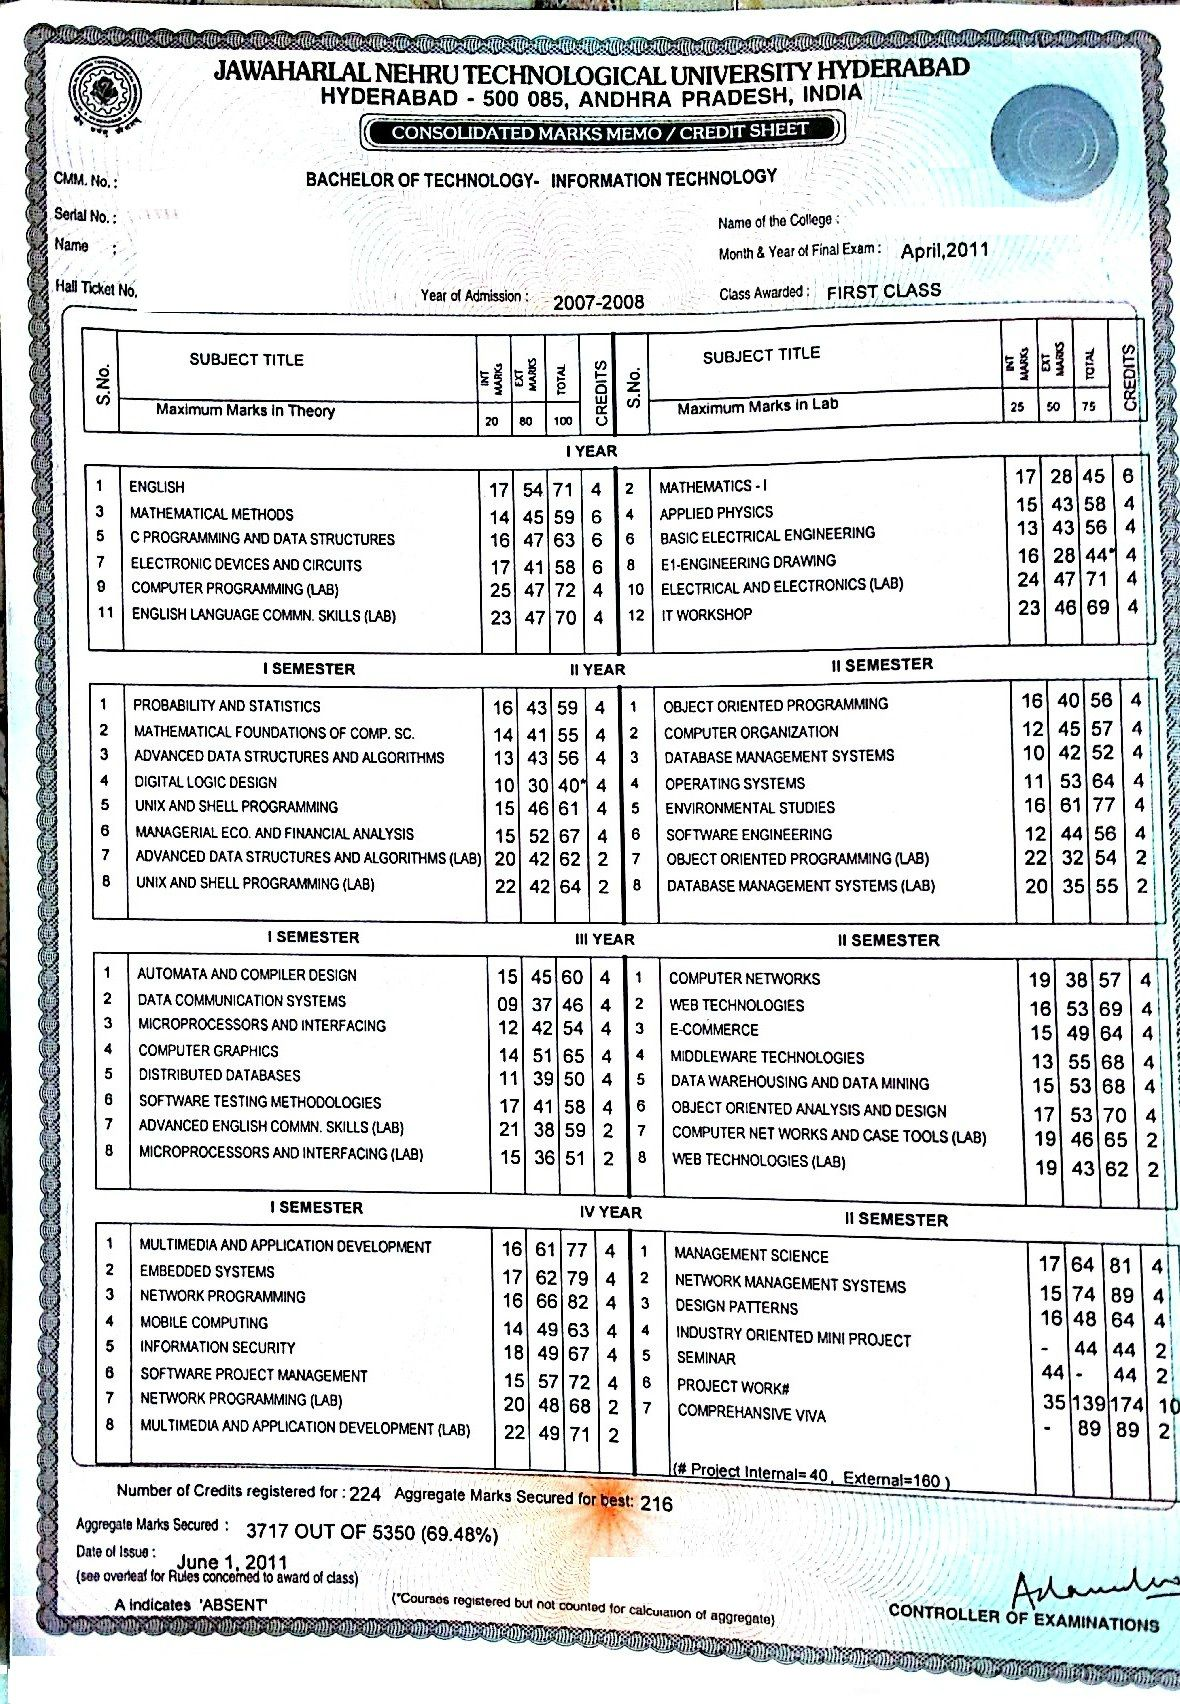 JNTU-HYDERABAD : IMPORTANT INFORMATION FOR 2014 PASS-OUTS OF